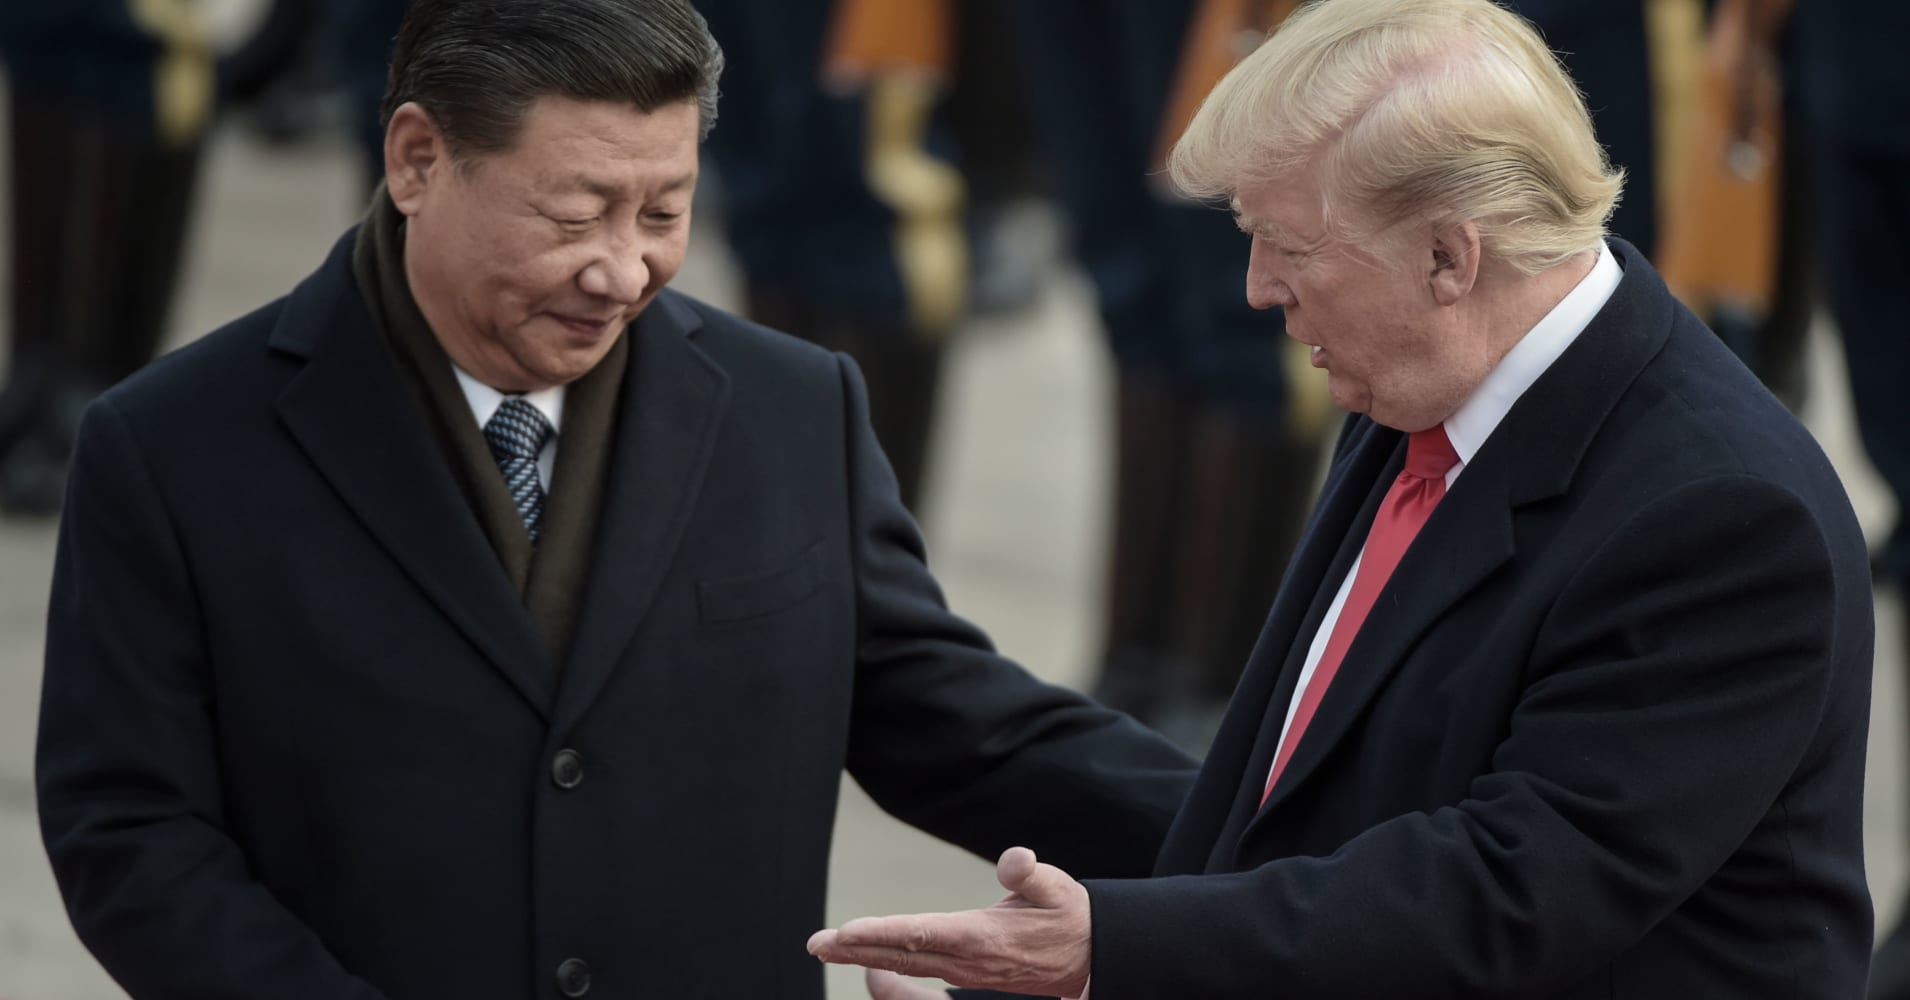 Stocks set to open slightly higher amid reports of US-China trade breakthrough